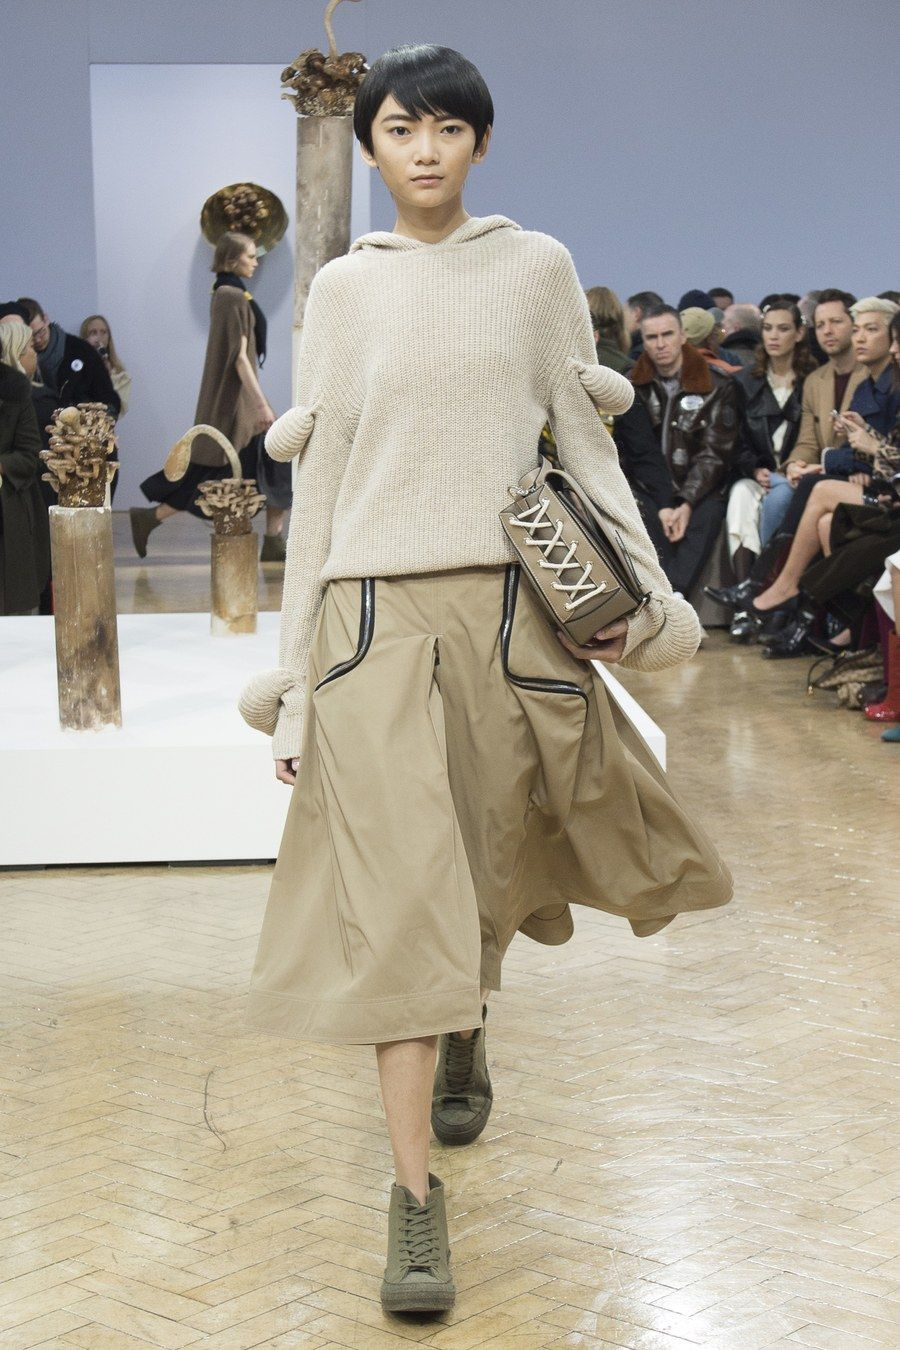 Fashion week Jw fall anderson runway review for lady